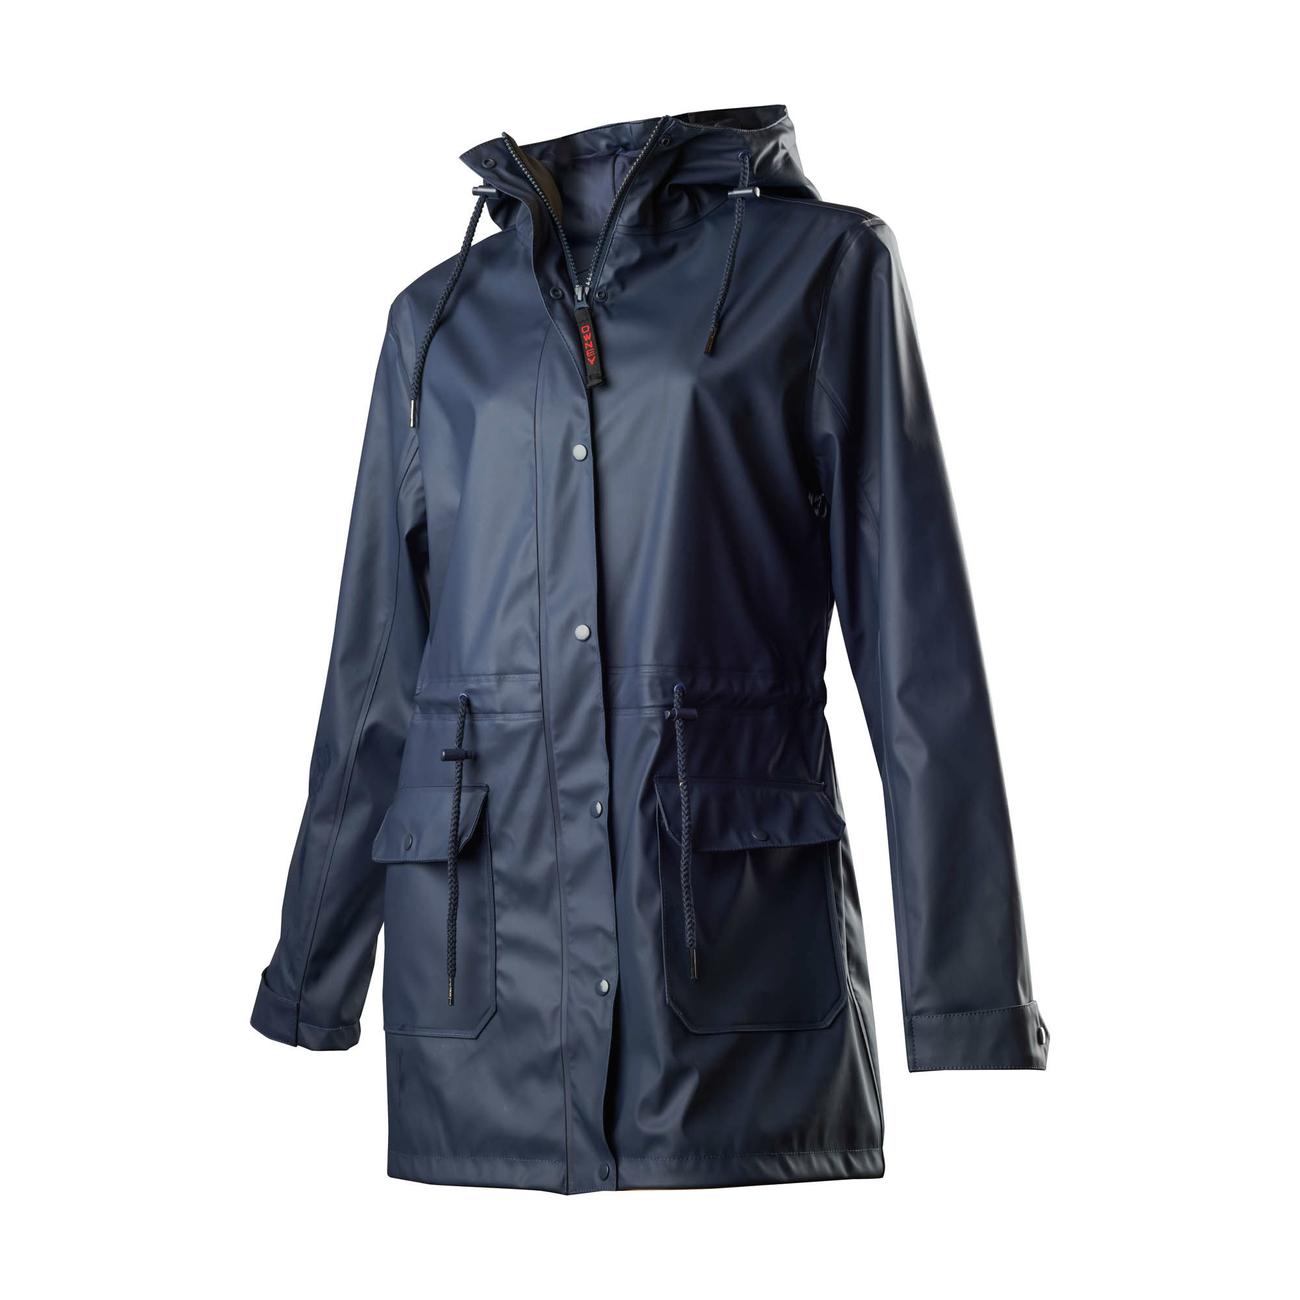 OWNEY Damen-Regenjacke Vela, M, blau